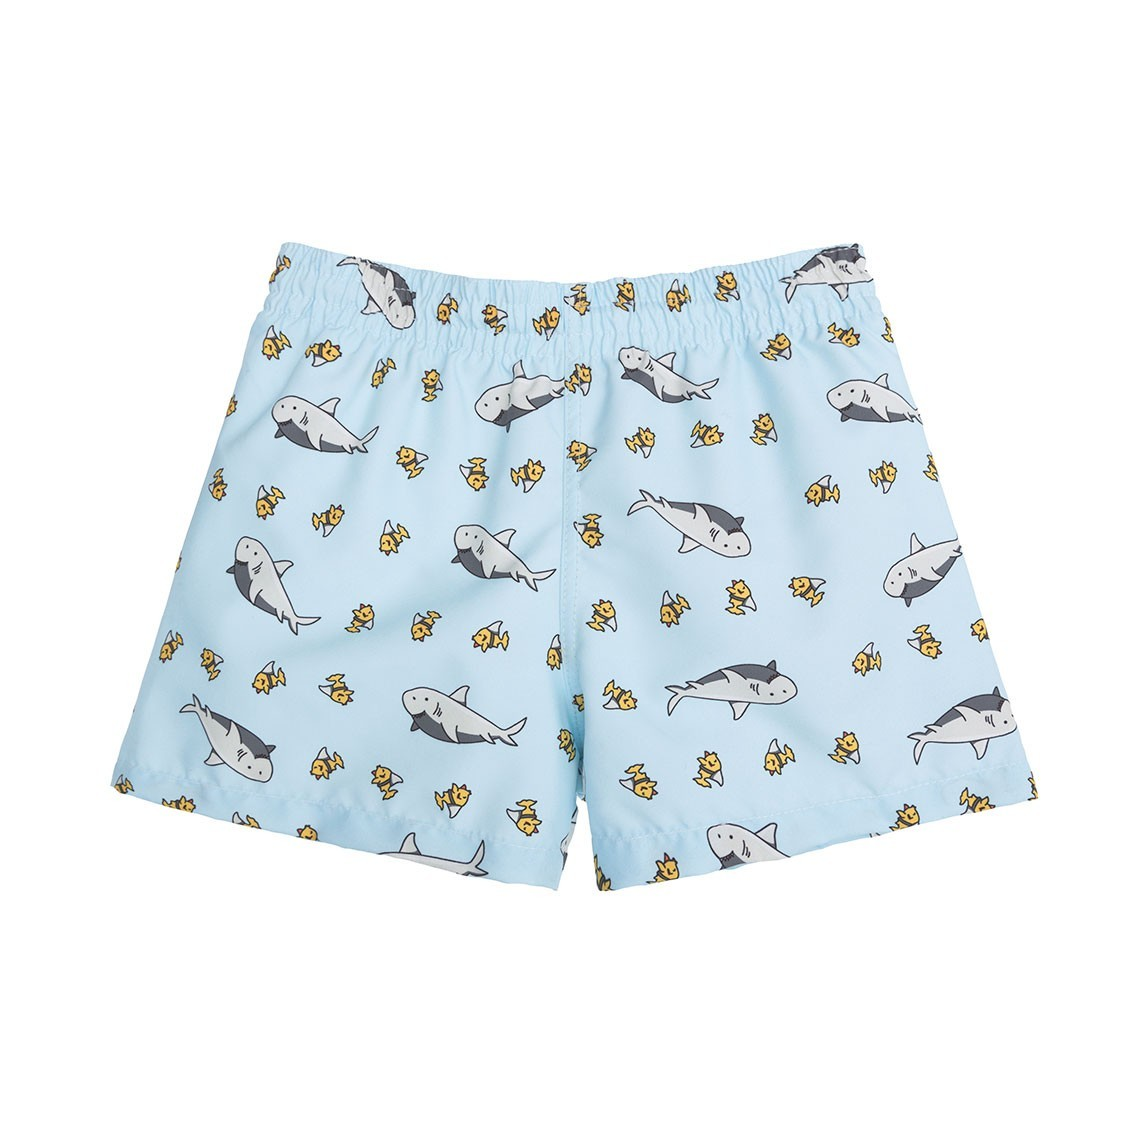 9a8f59ad2e Boy Swim short Light Blue Sharks 2 to 4 years - Ocoly